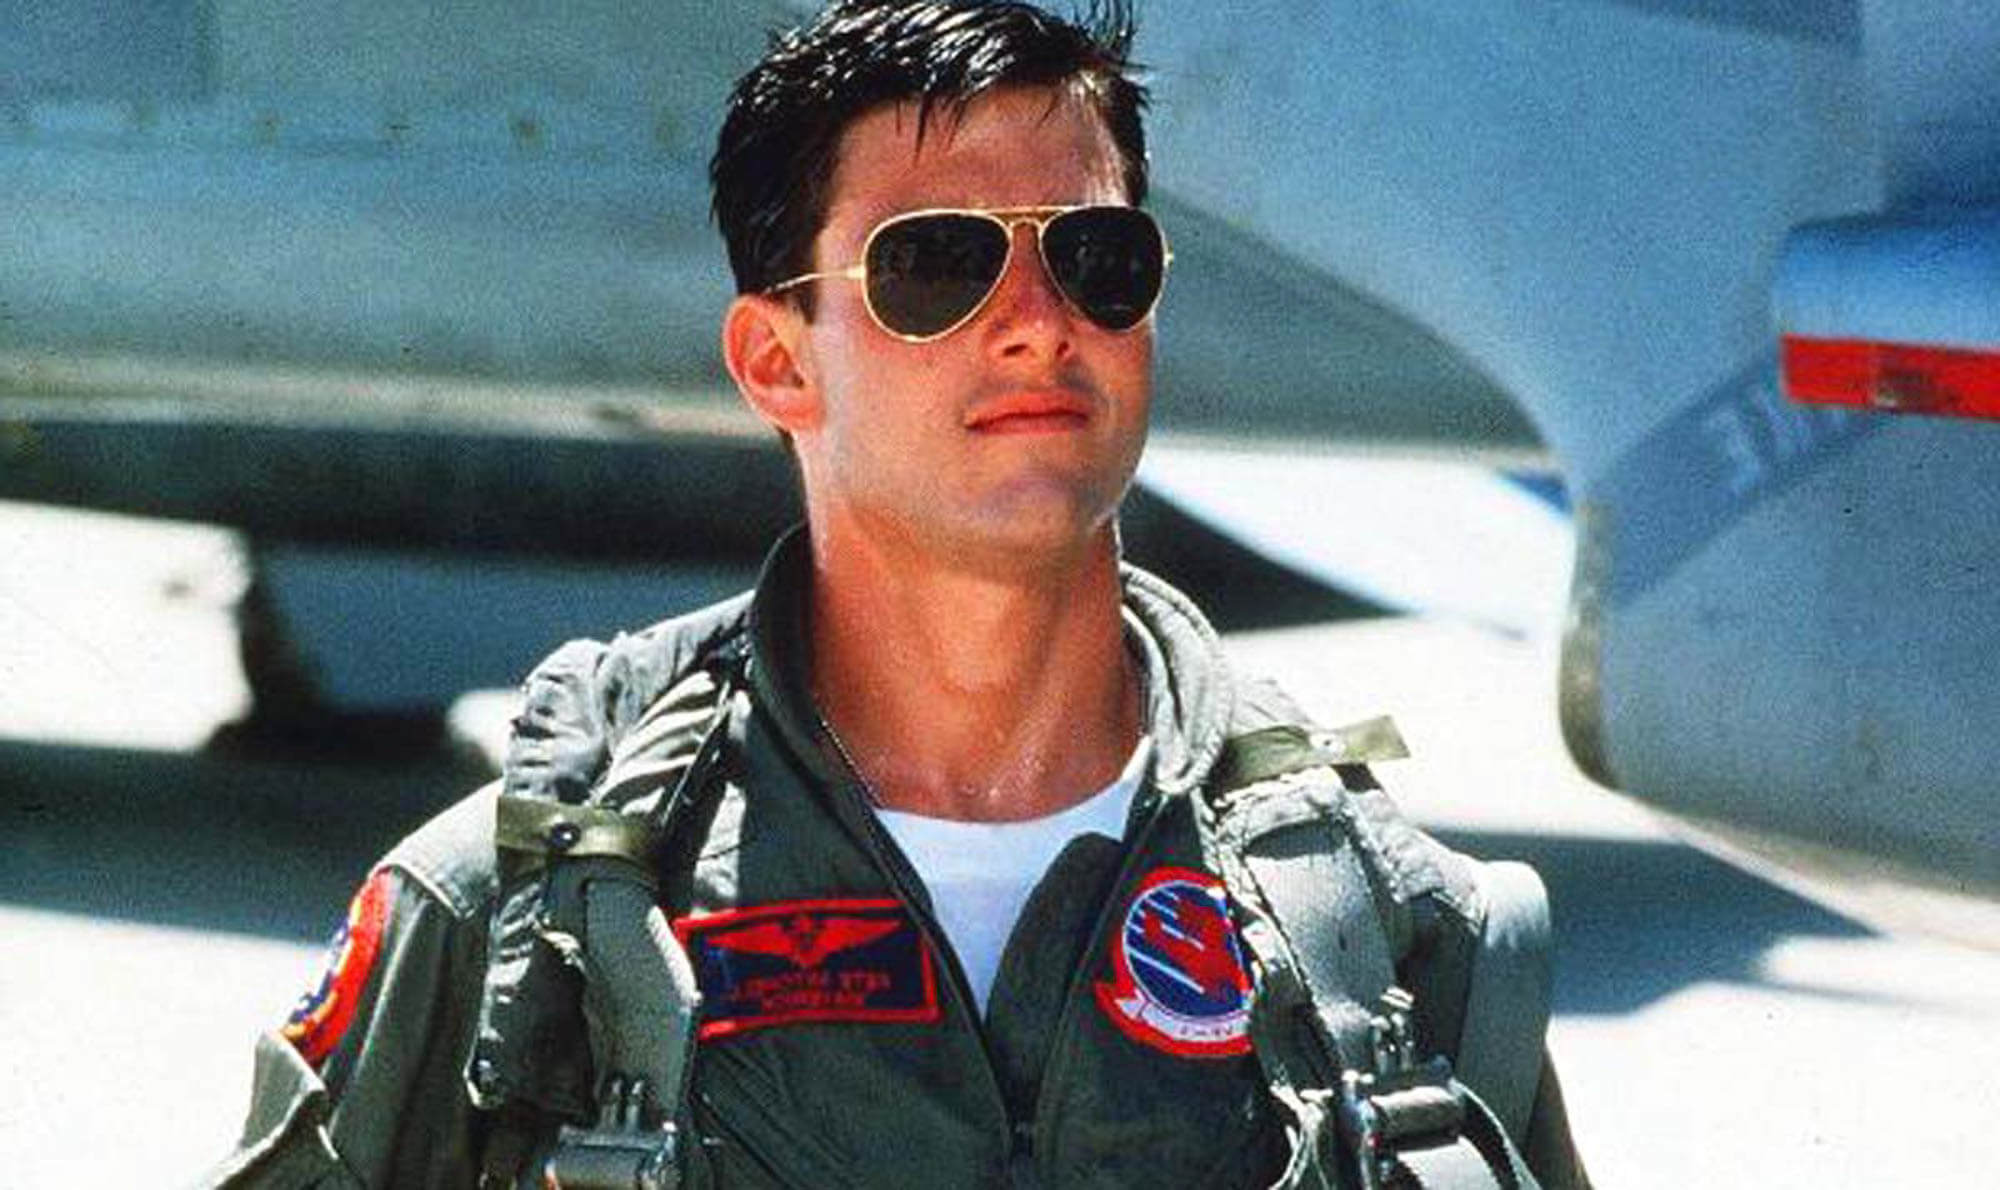 Tom-Cruise-wearing-aviators-in-Top-Gun